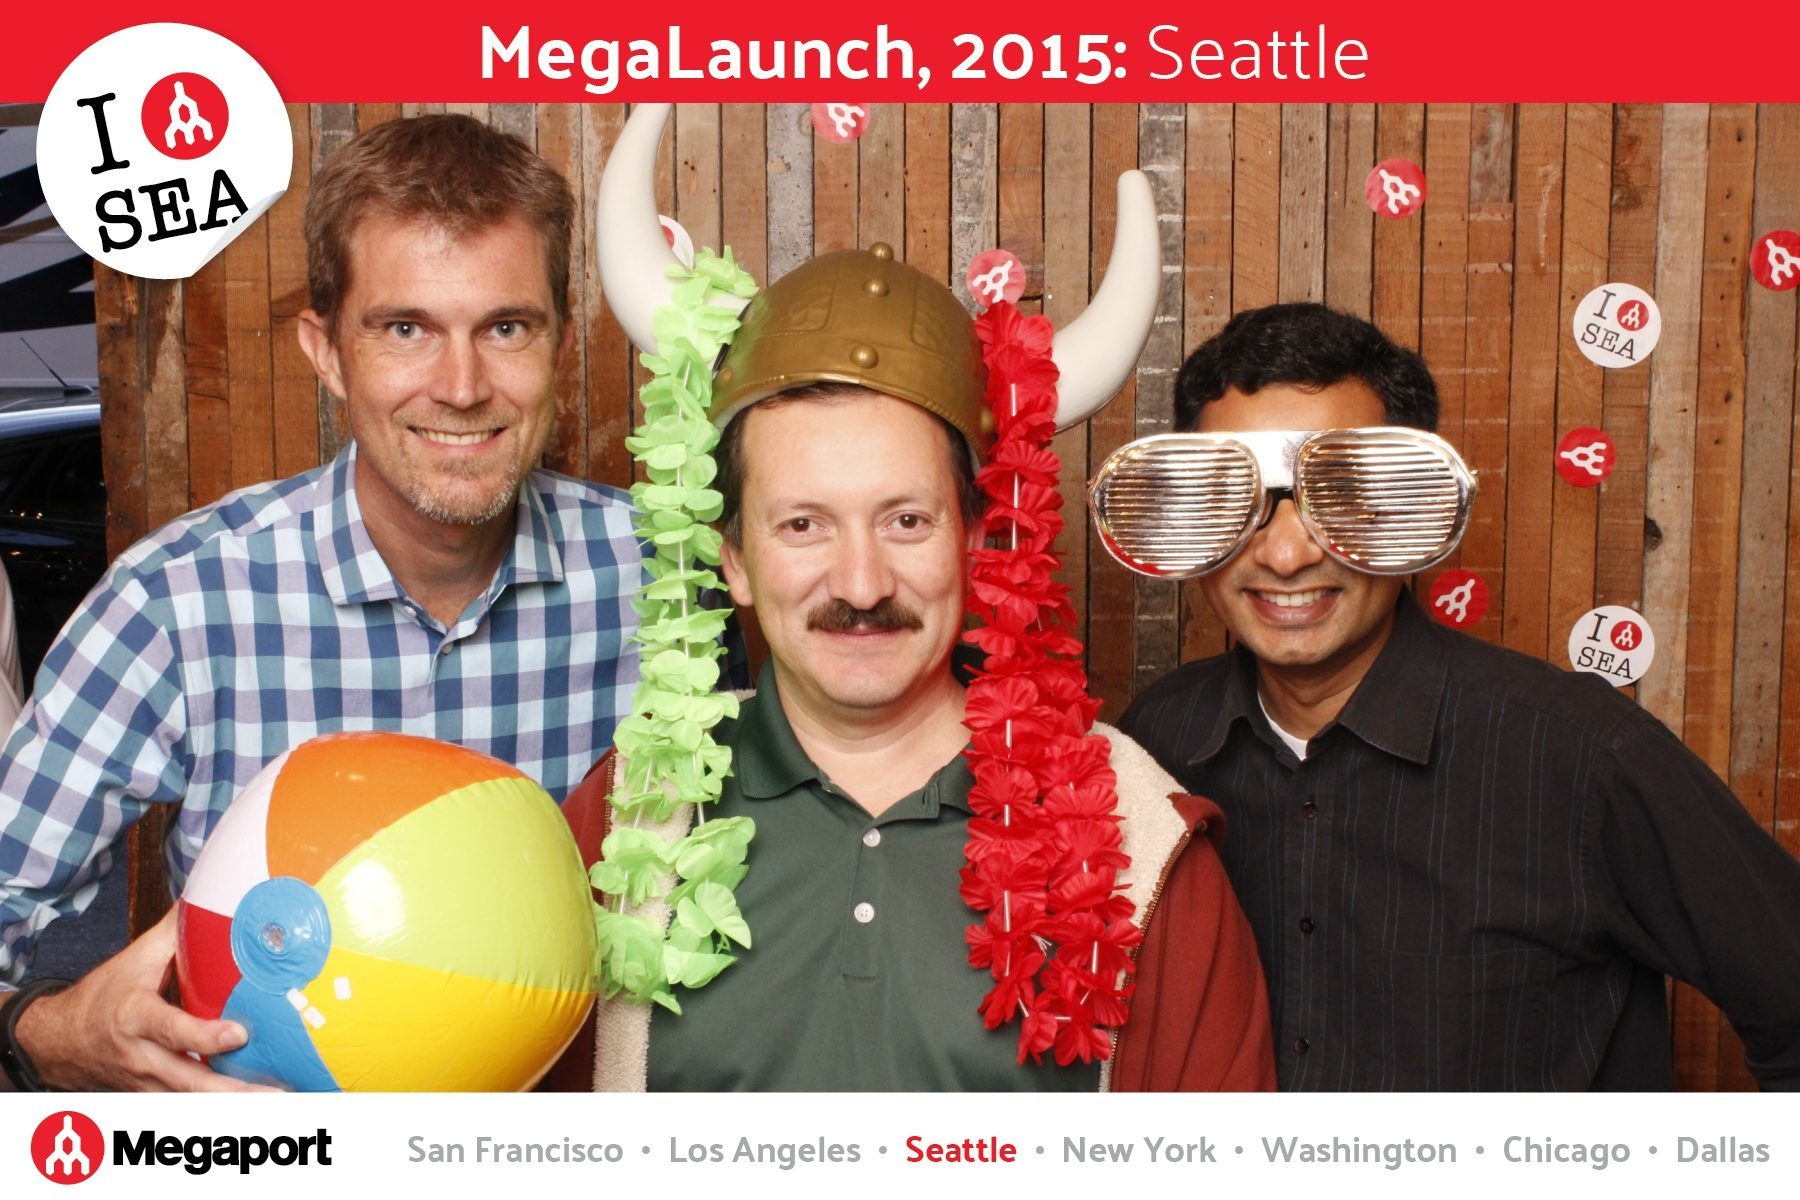 Celebrating the US Launch of Megaport at Sole Repair Workshop in Seattle's Capitol Hill Neighborhood - Tonight We PartyBooth! Seattle Photo Booth ©2015 PartyBoothNW.com